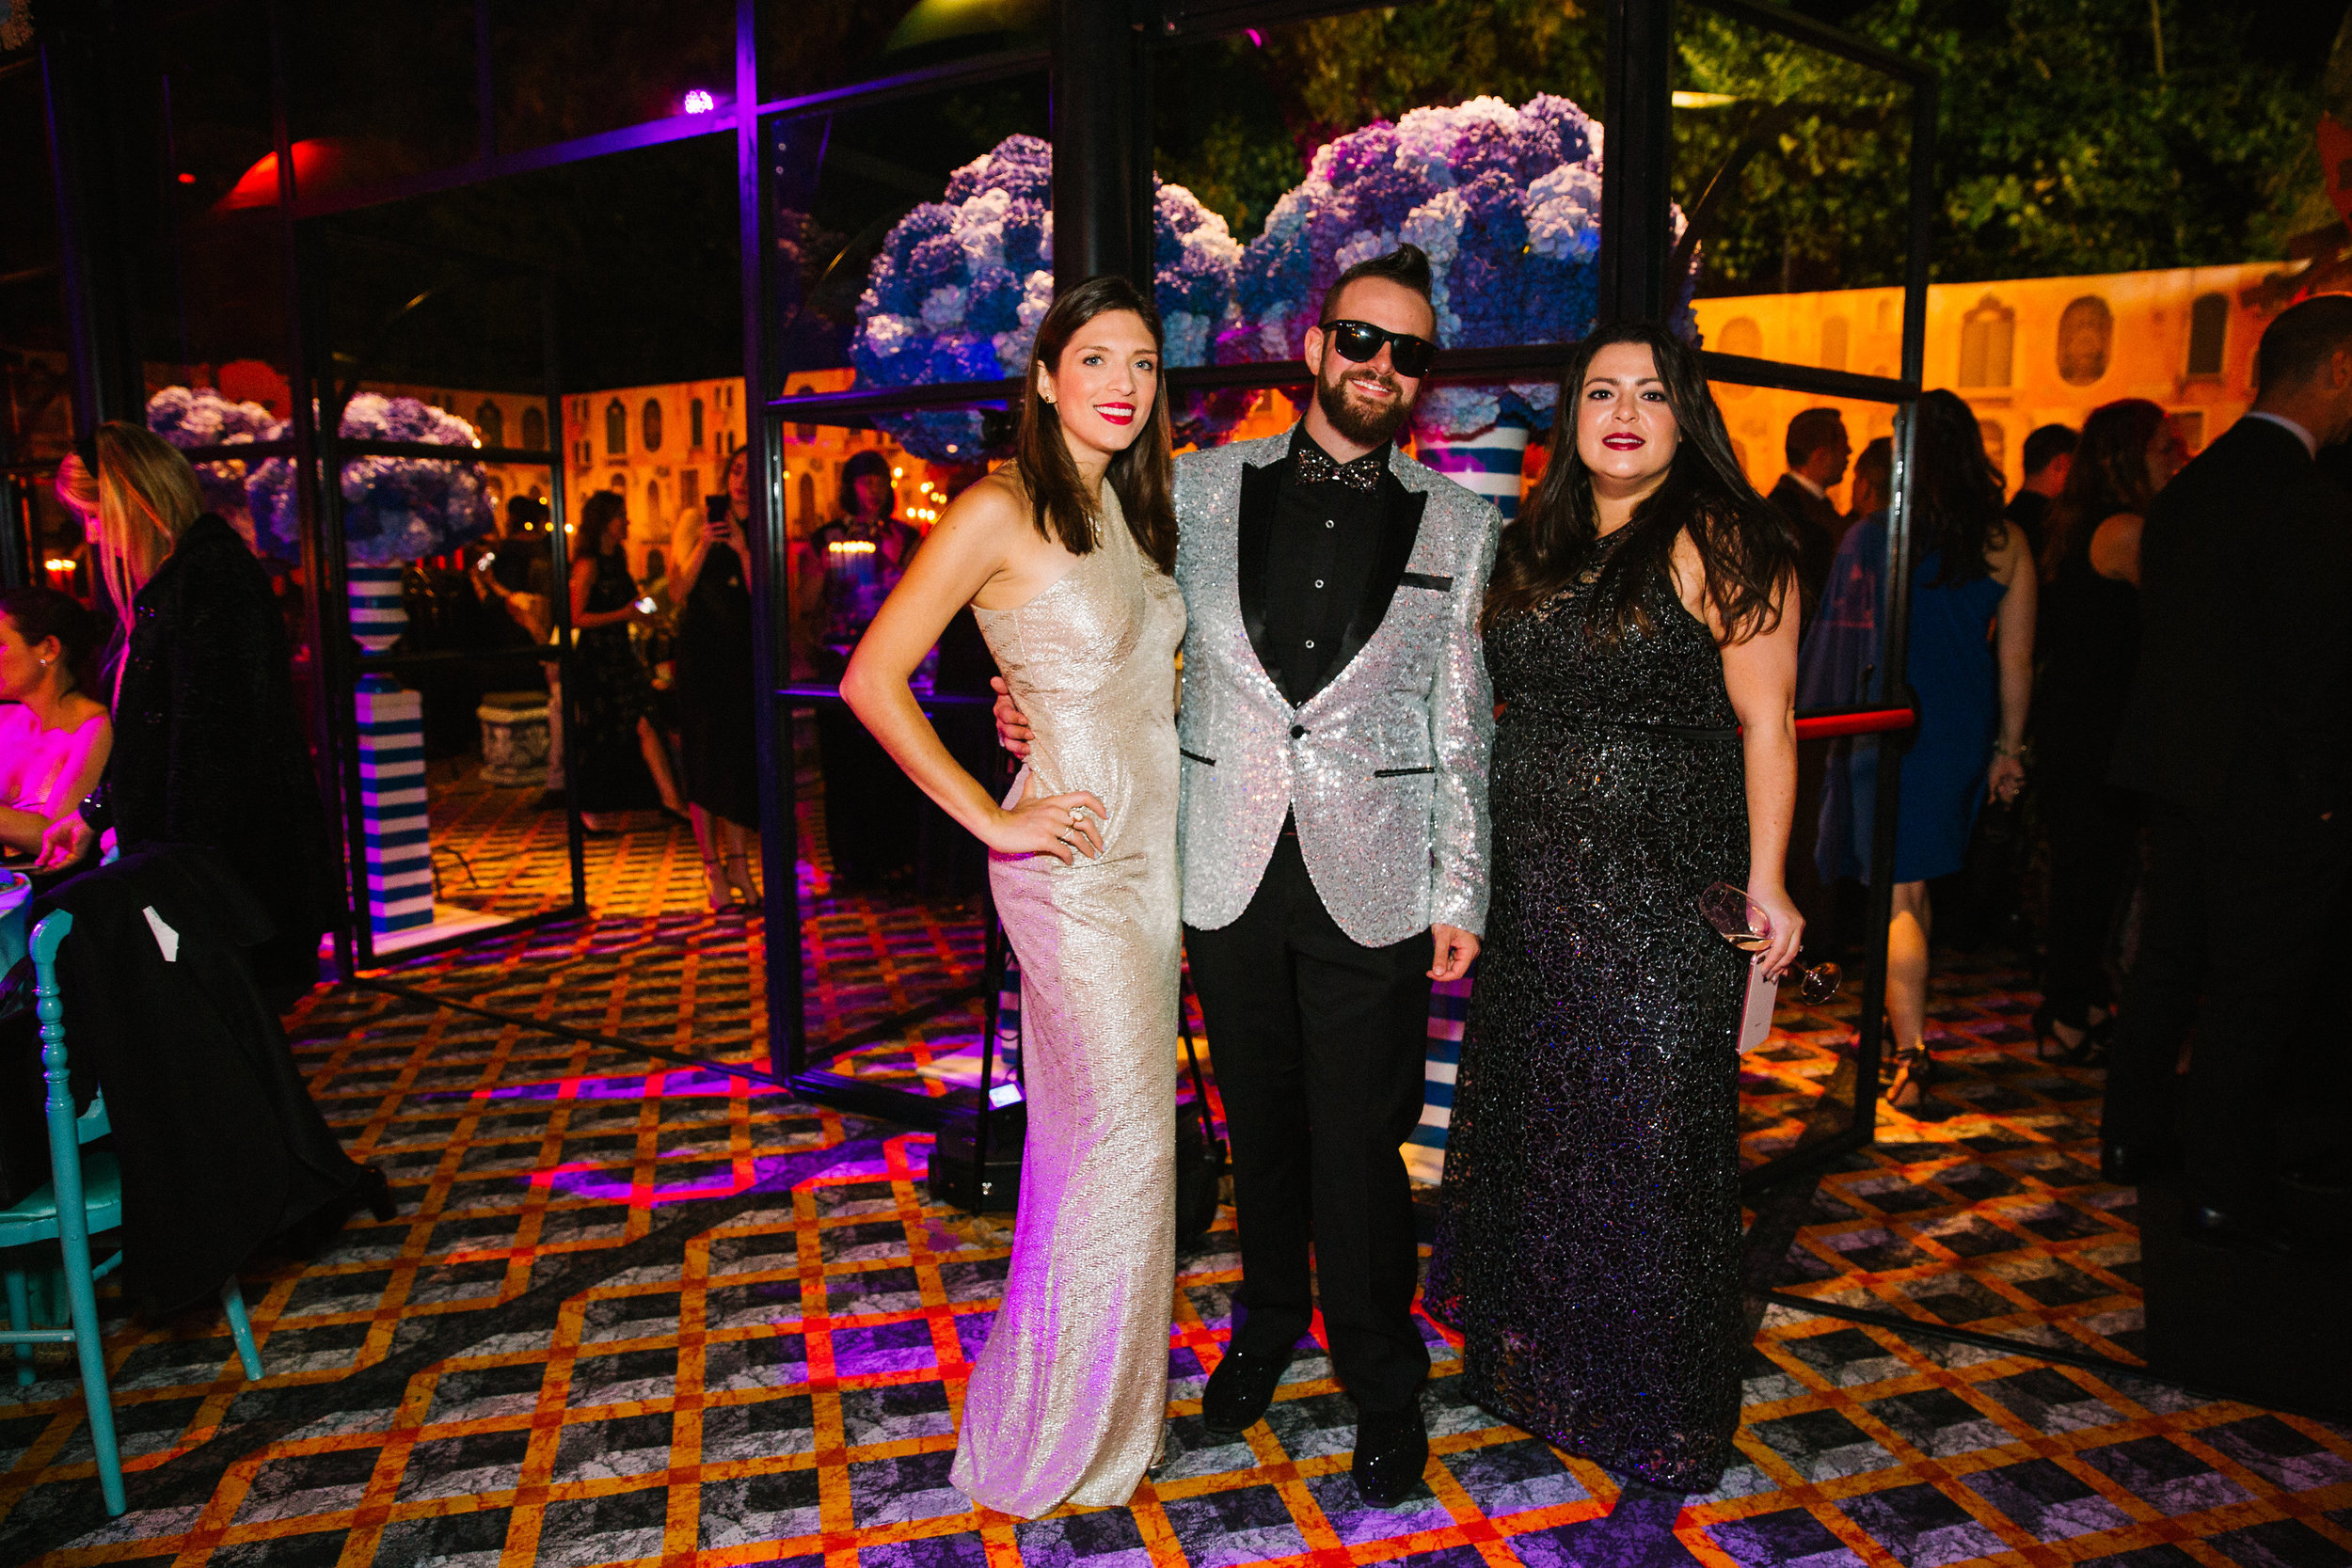 In our opinion, Jordan Kahn had the best tux. Even his shoes were sparkly!  Photo by Betsi Ewing Studio.